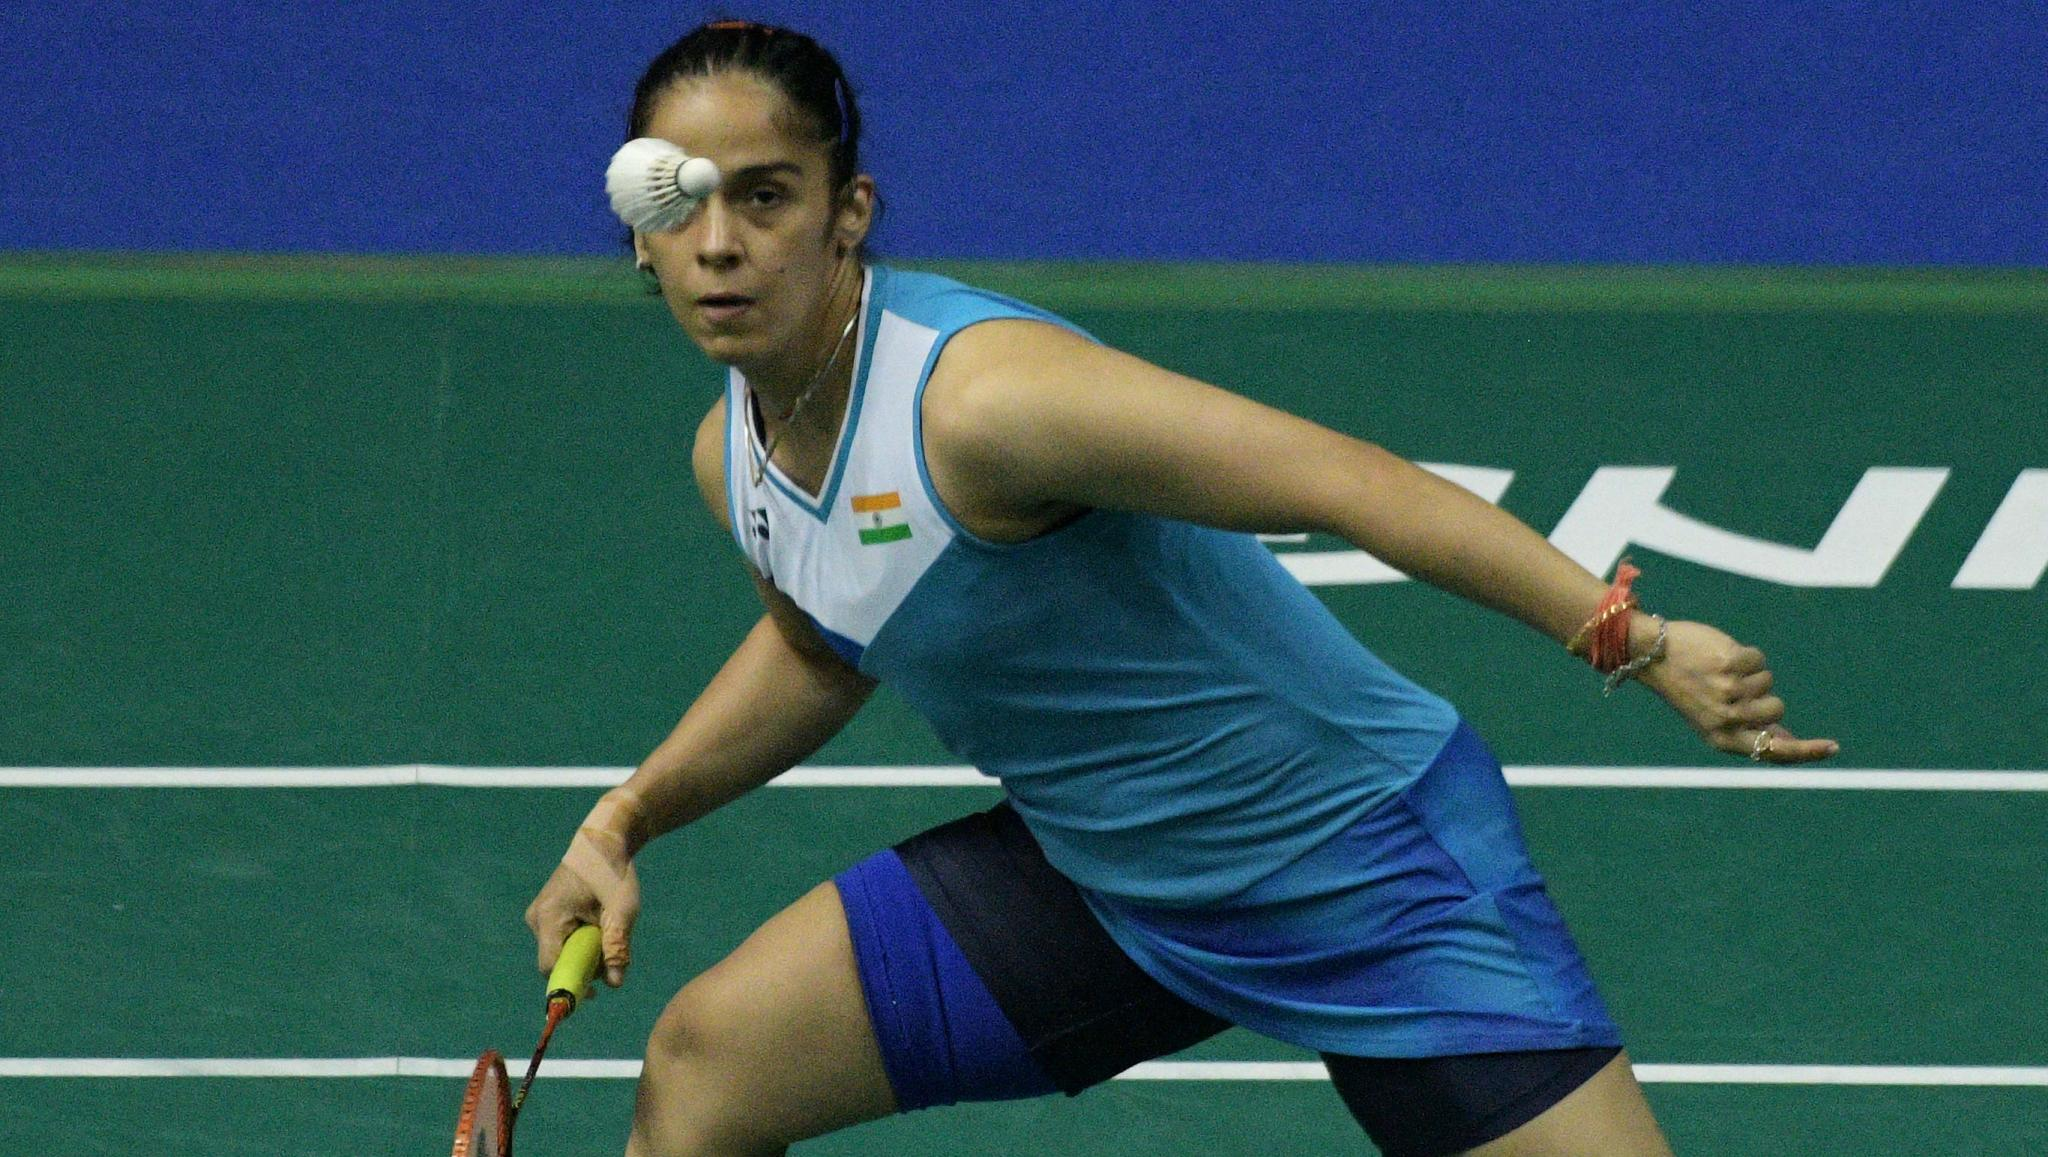 Denmark Open 2019: Saina Nehwal Crashes Out After Losing to Sayaka Takahashi in Straight Sets